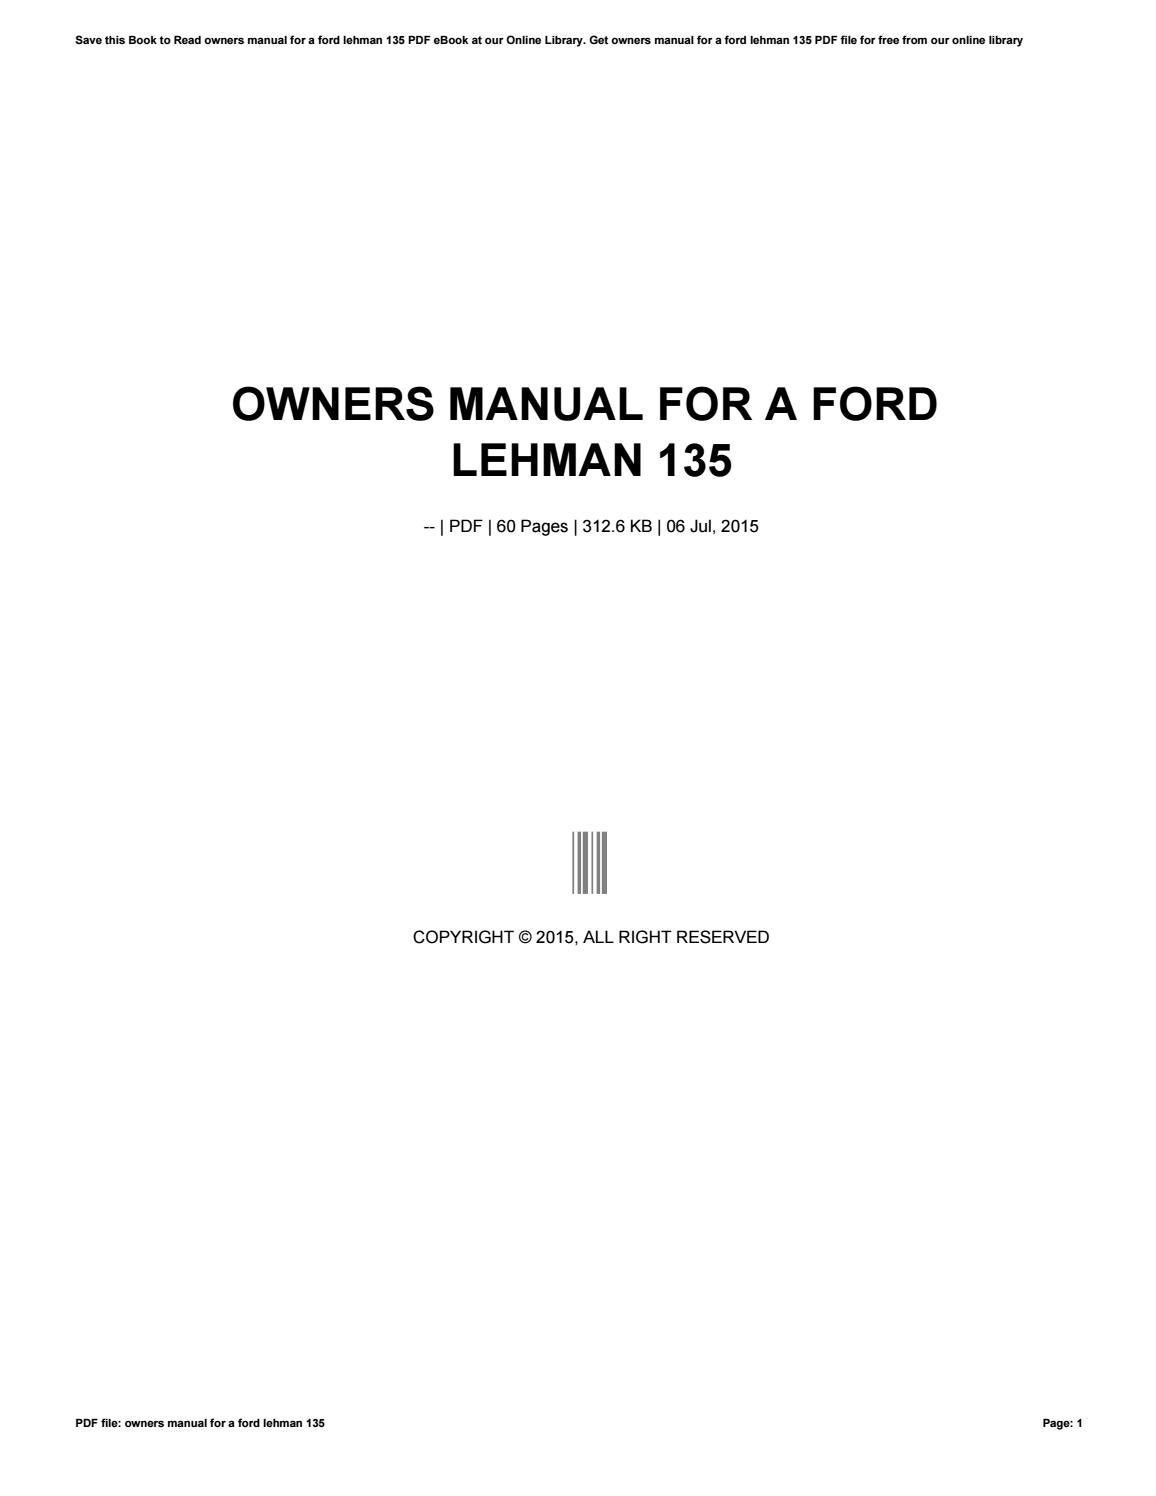 ford owners manual online ebook rh ford owners manual online ebook thepivotpoint us Rotek Tank Farm Rotek Employment